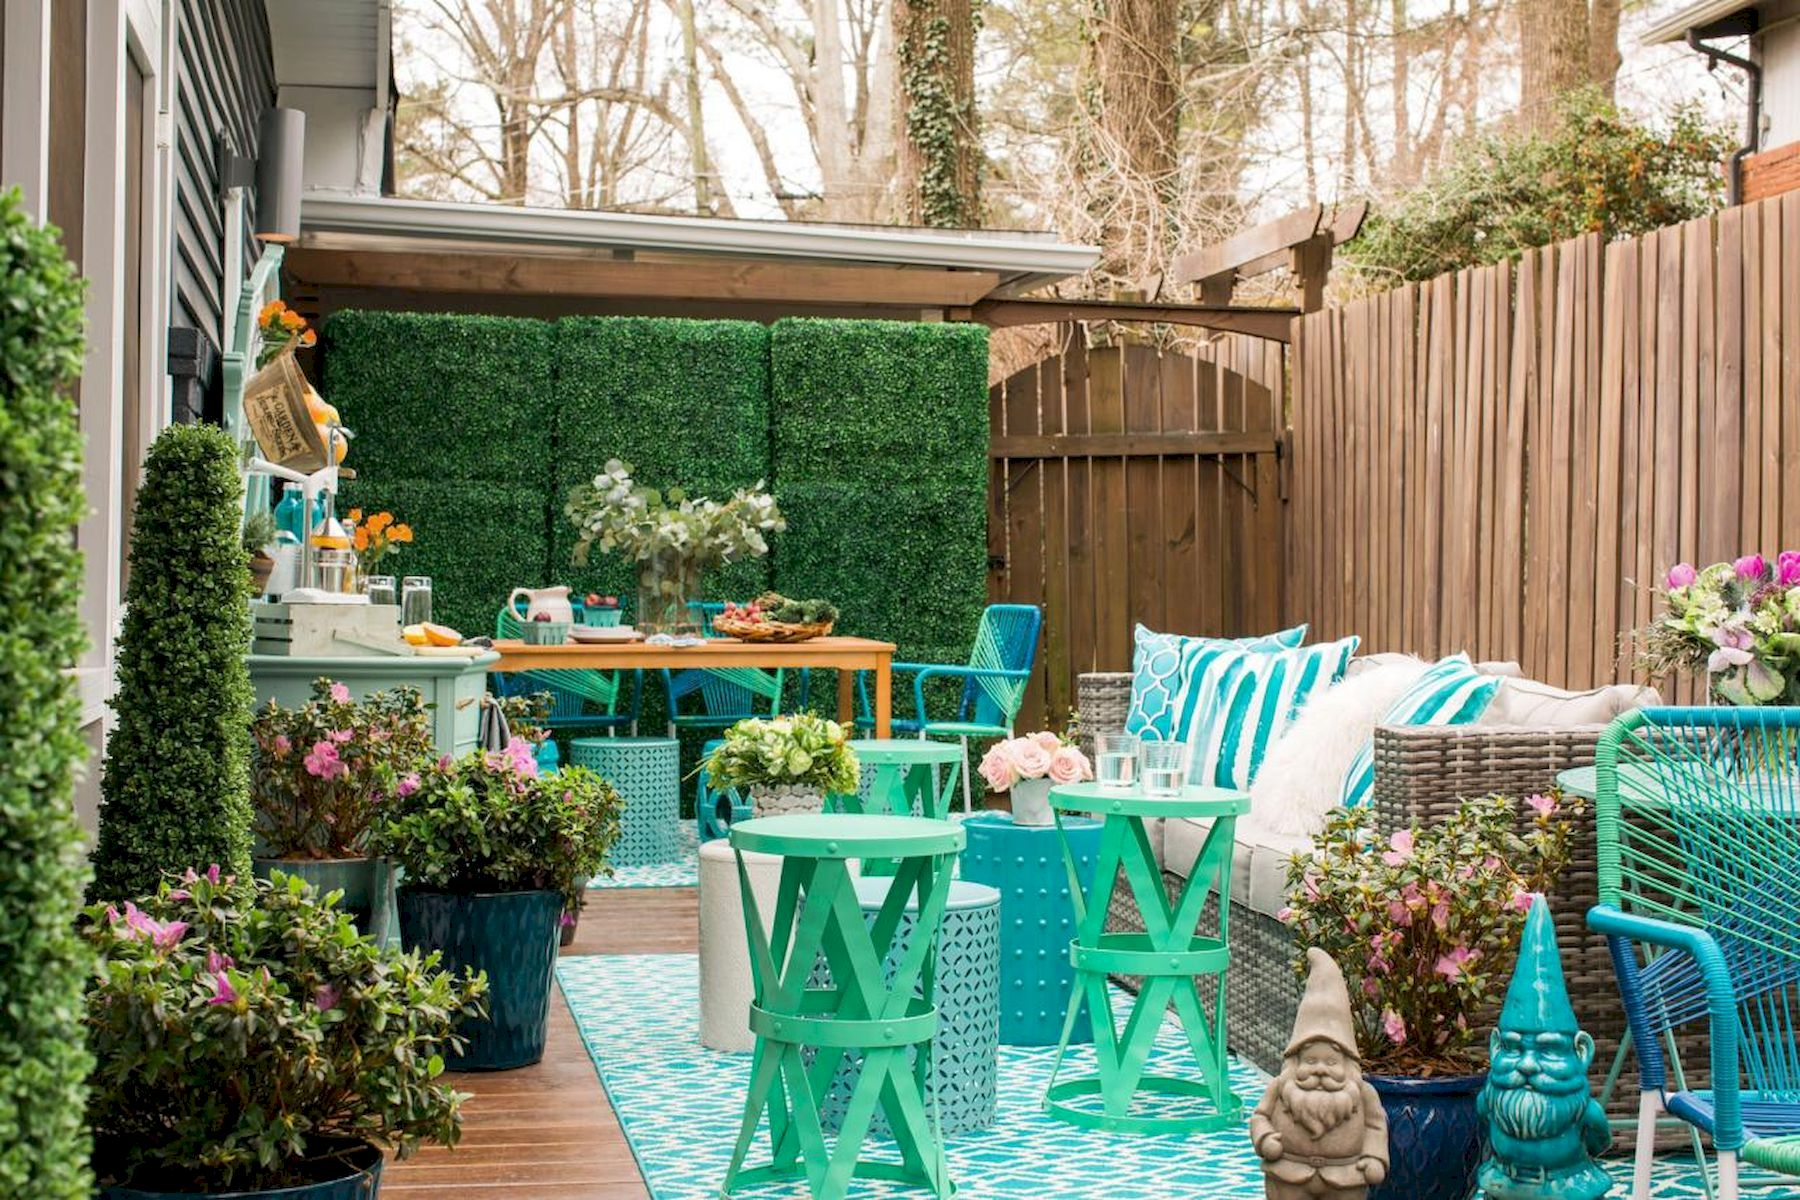 50 Awesome Summer Backyard Decor Ideas Make Your Summer Beautiful 5 for 15 Some of the Coolest Ways How to Build Summer Backyard Ideas